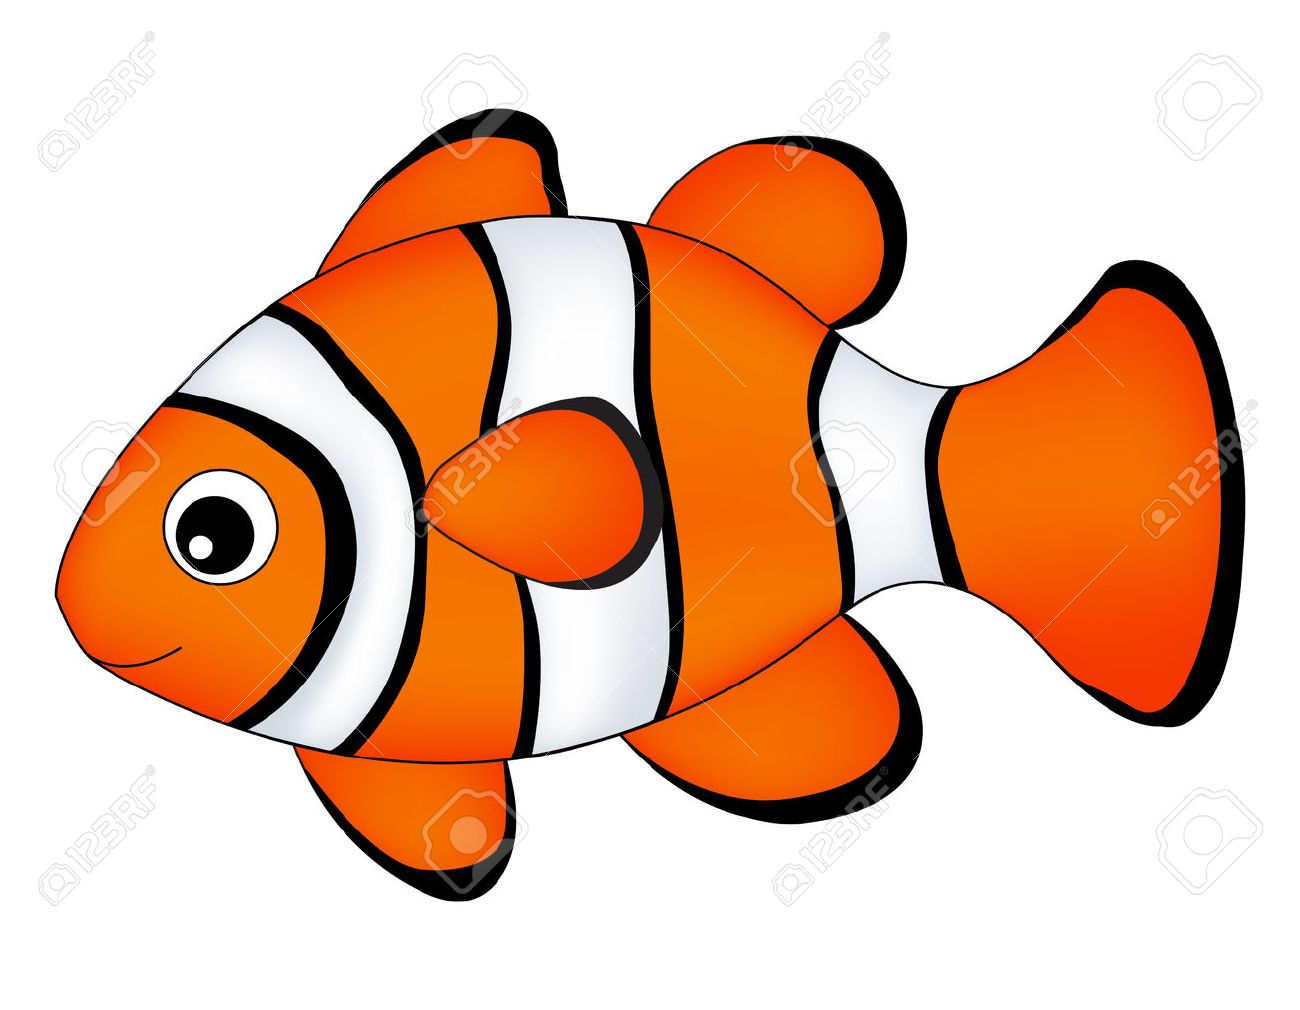 hight resolution of reef fish clown fish fish isolated on white background stock vector 62403510